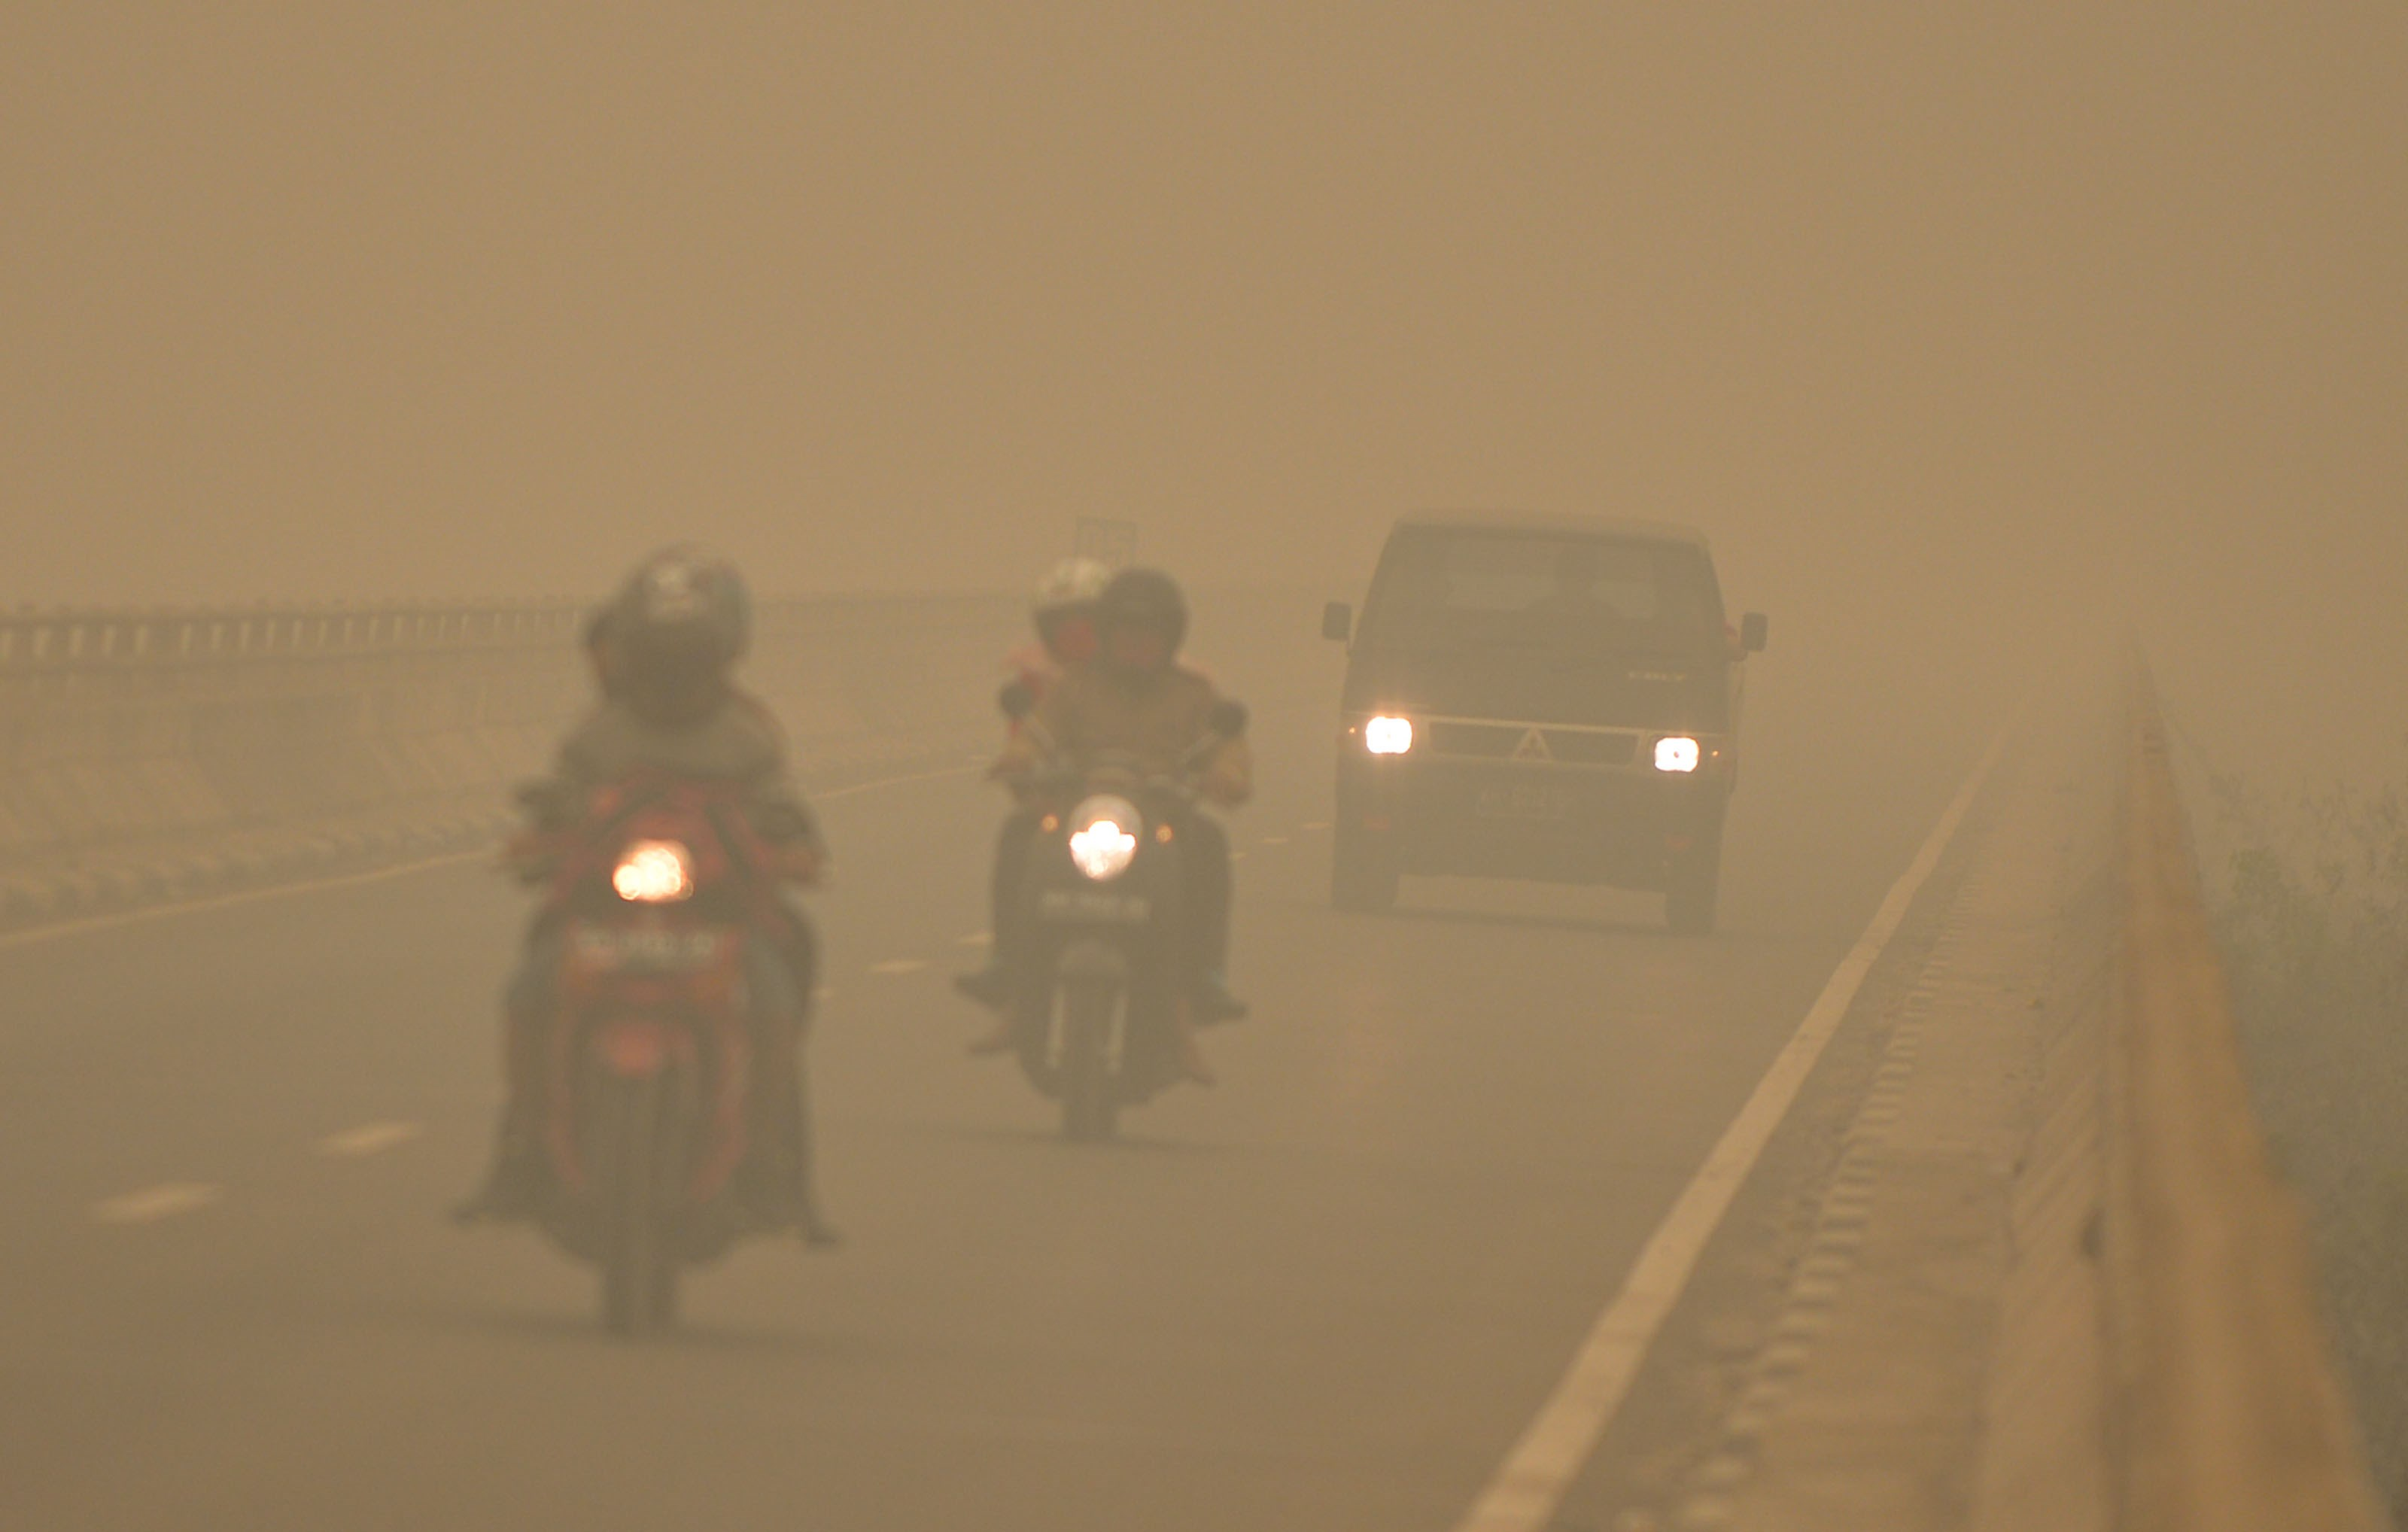 Commuters drive through thick haze in Tumbang Nusa, Central Kalimantan, on Oct. 25, 2015.